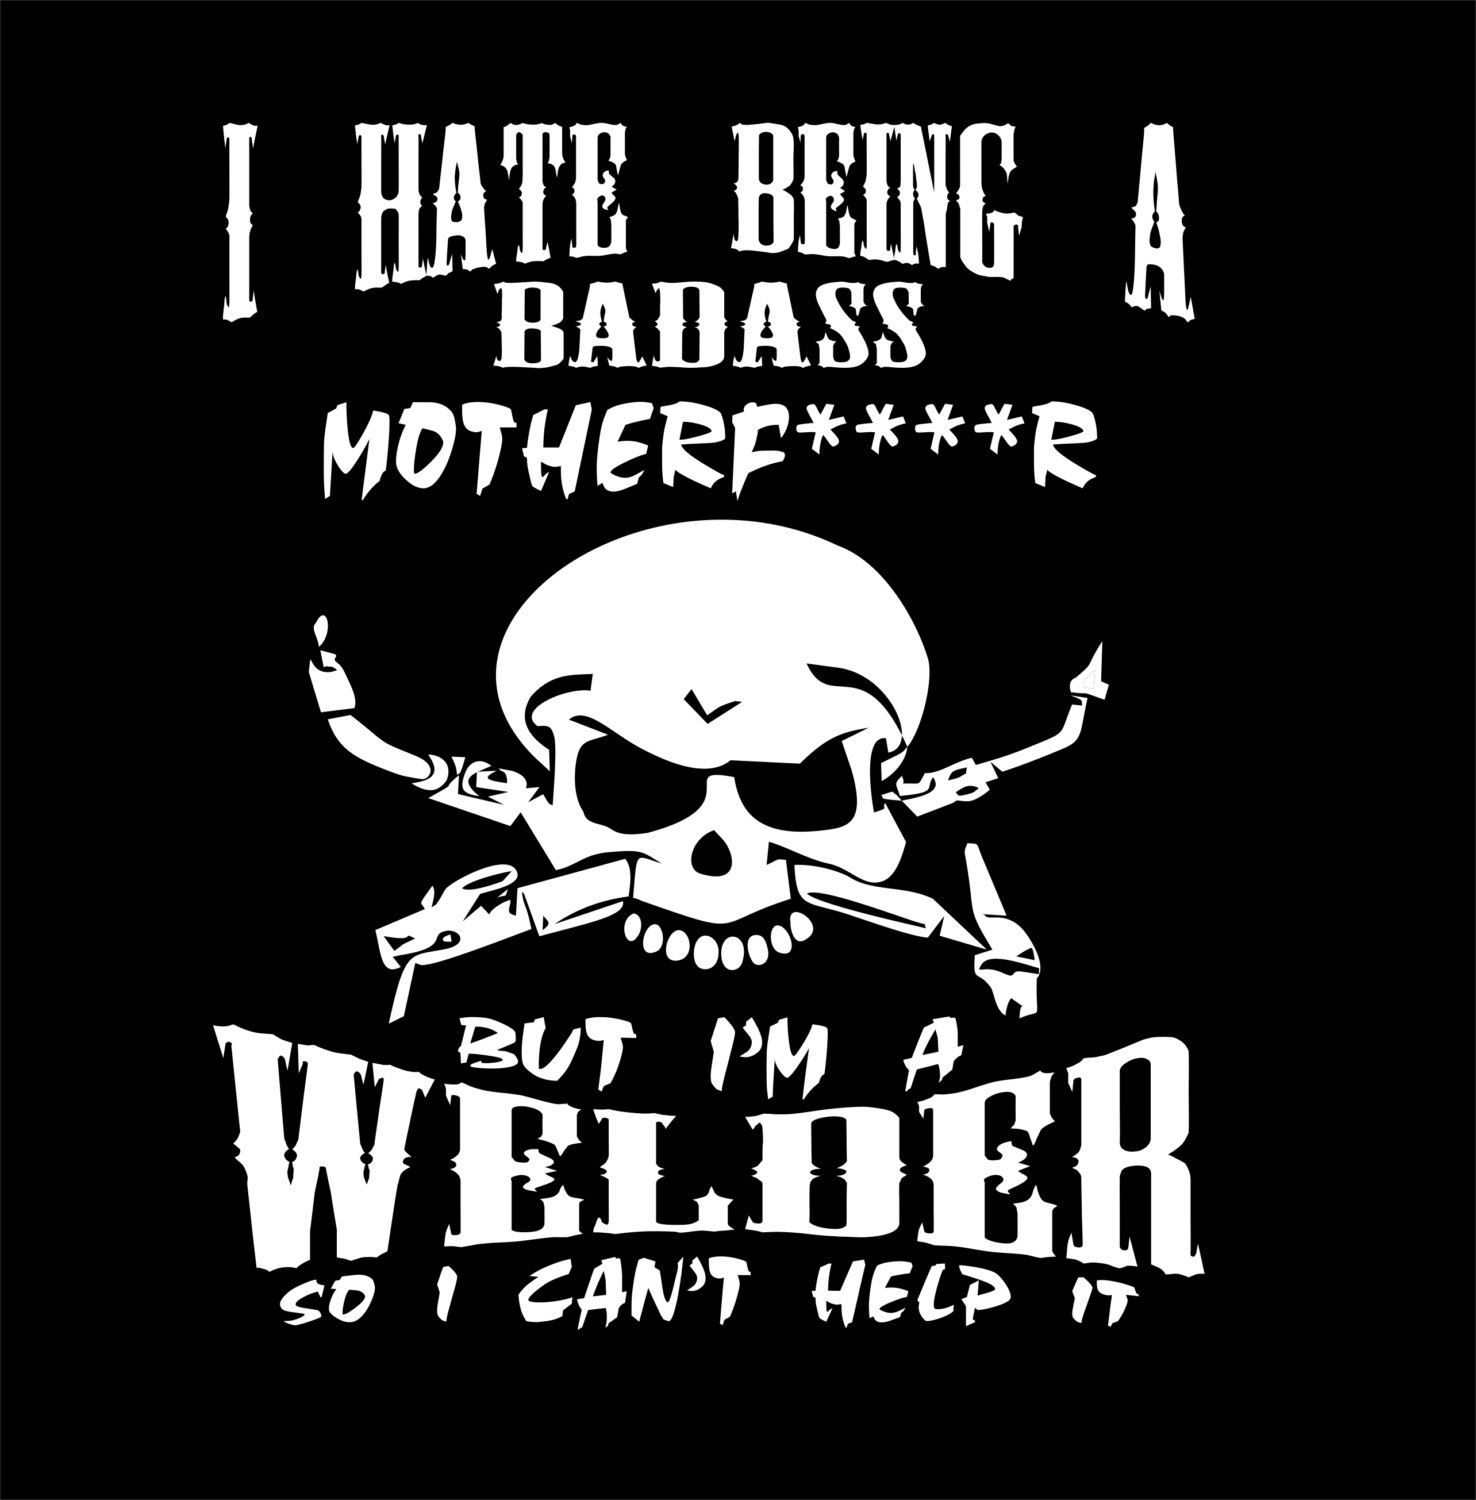 Hate Being A Badass Welder T Shirt By Anacustomprints On Etsy Shirts